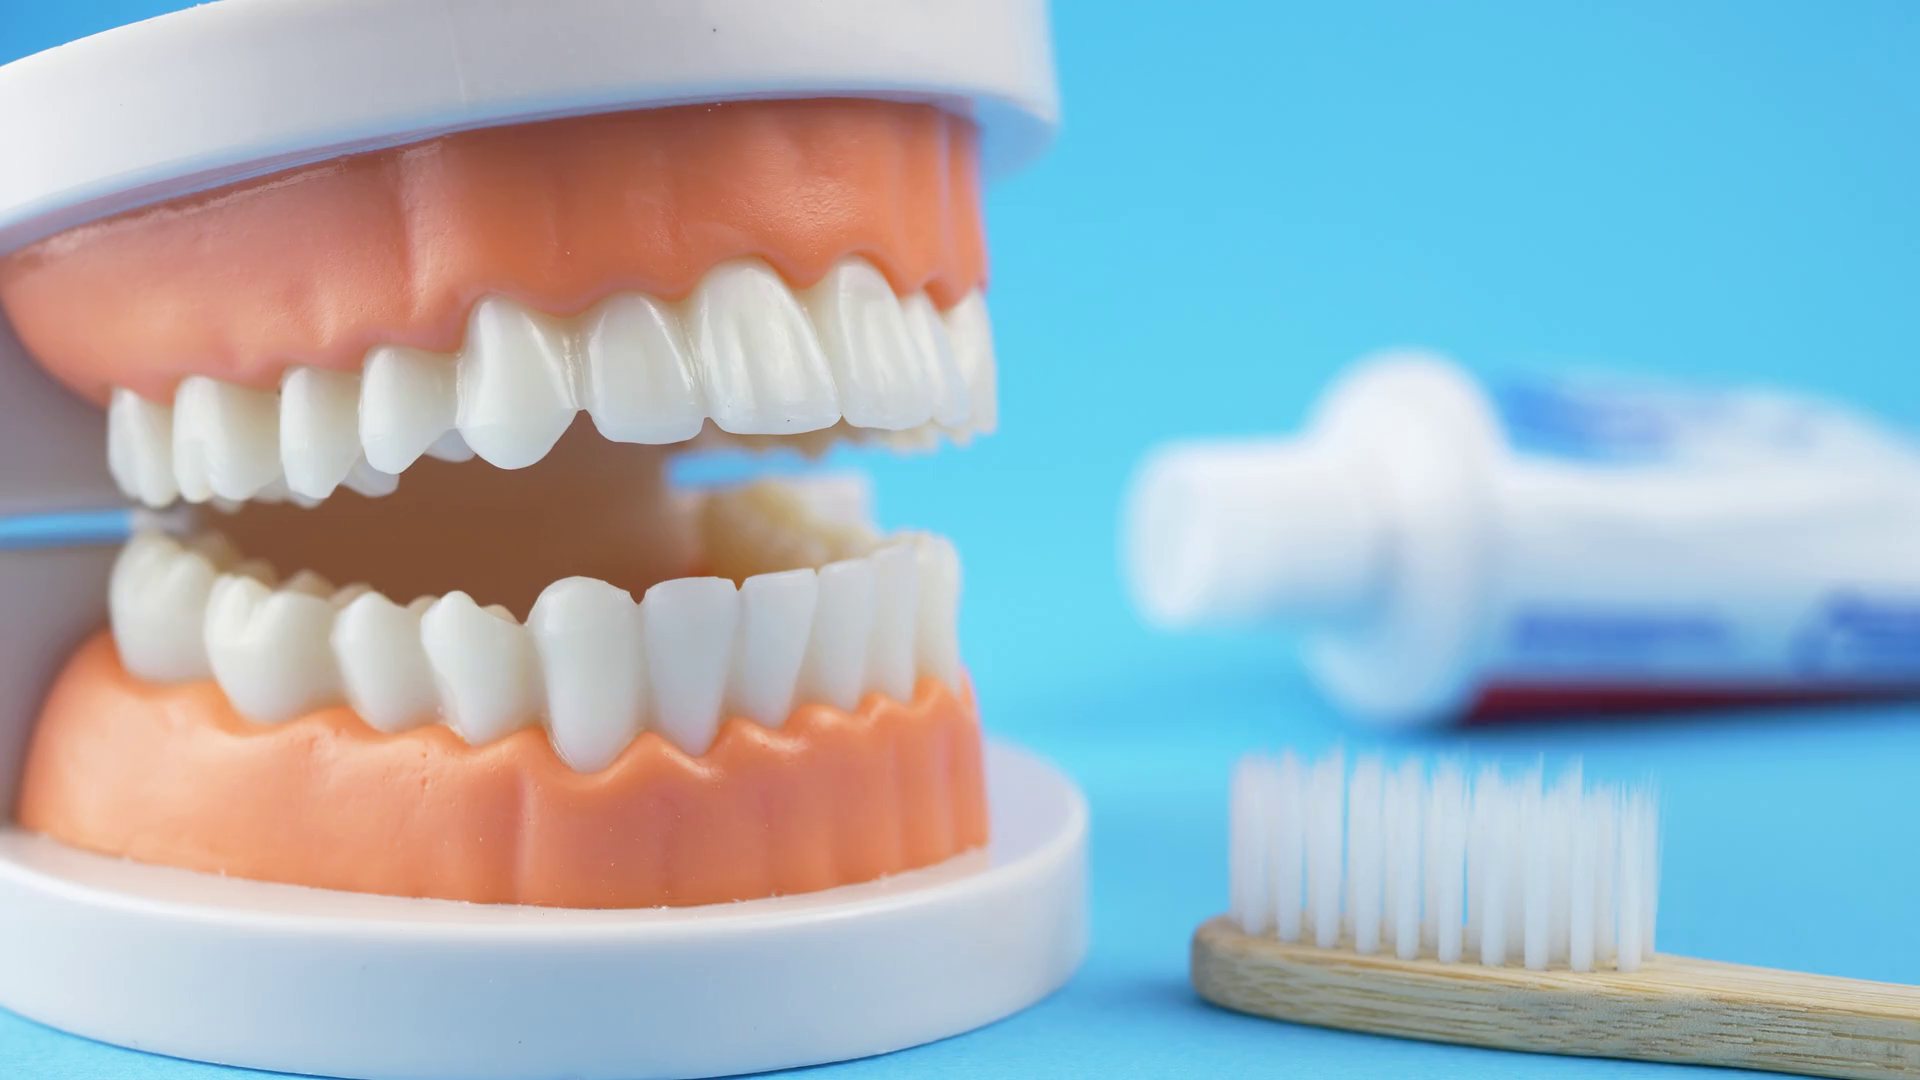 Dentist Teaching How To Brush Teeth By White Bamboo Toothbrush On Back Blue Background With Toothpaste Concept Dental Hygiene Stock Video Footage Storyblocks